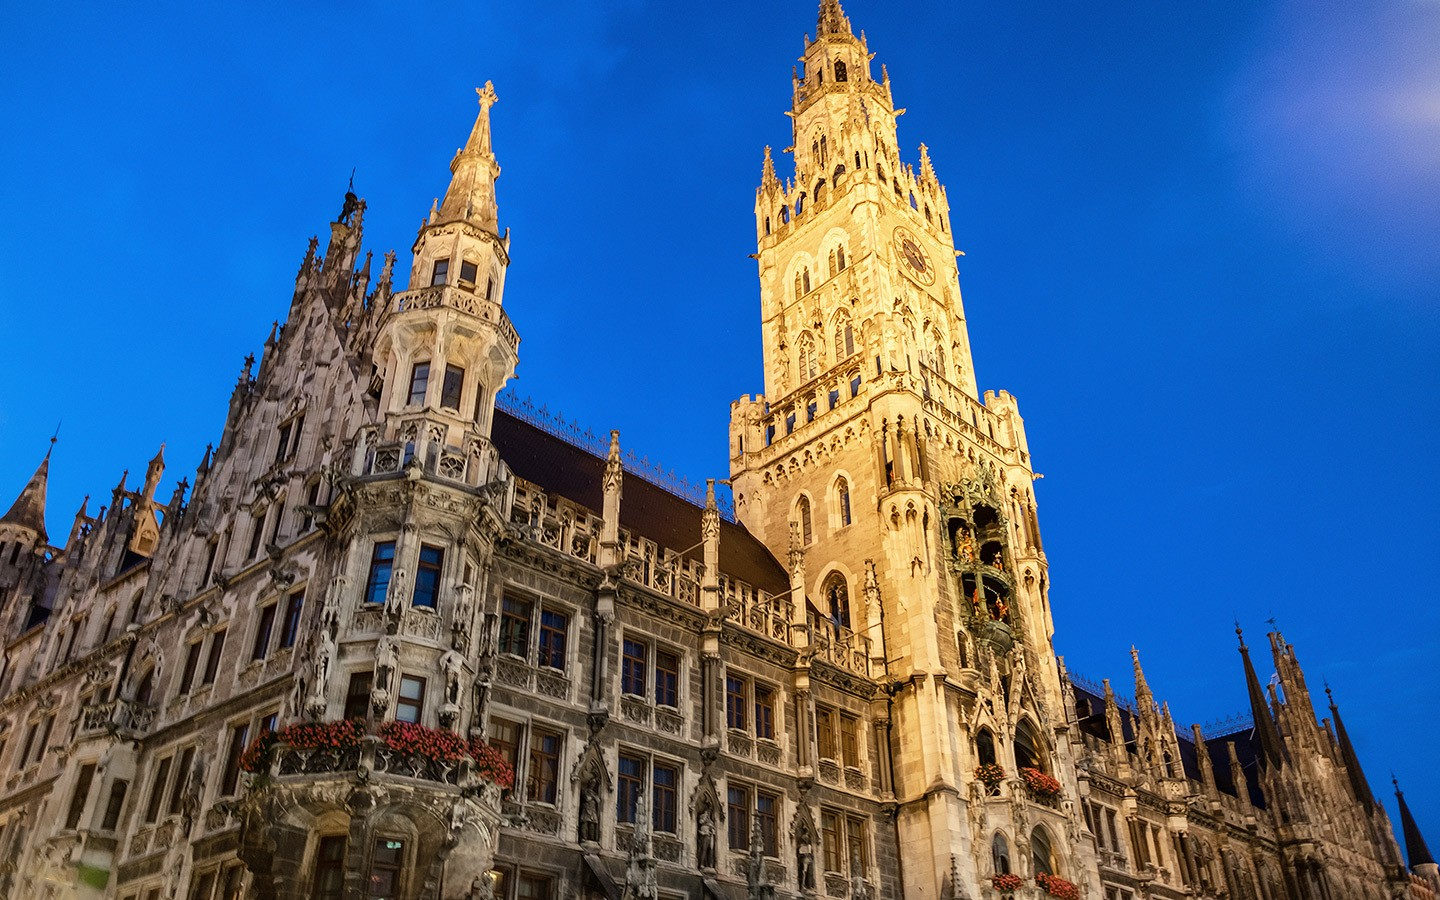 Munich's New Town Hall (Neus Rathaus)